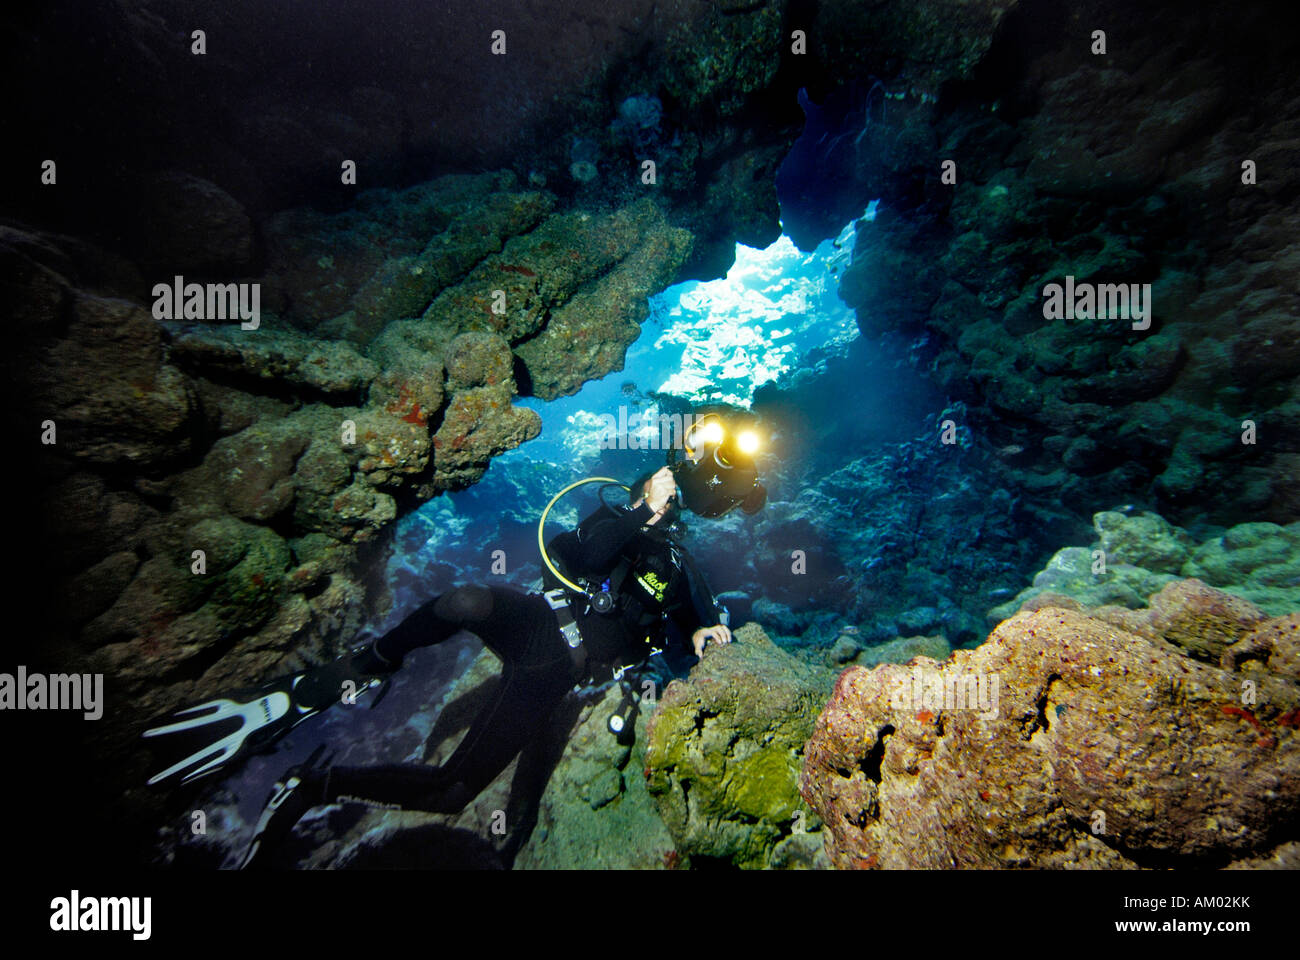 Diver films a cave underwater, Red Sea, Egypt - Stock Image